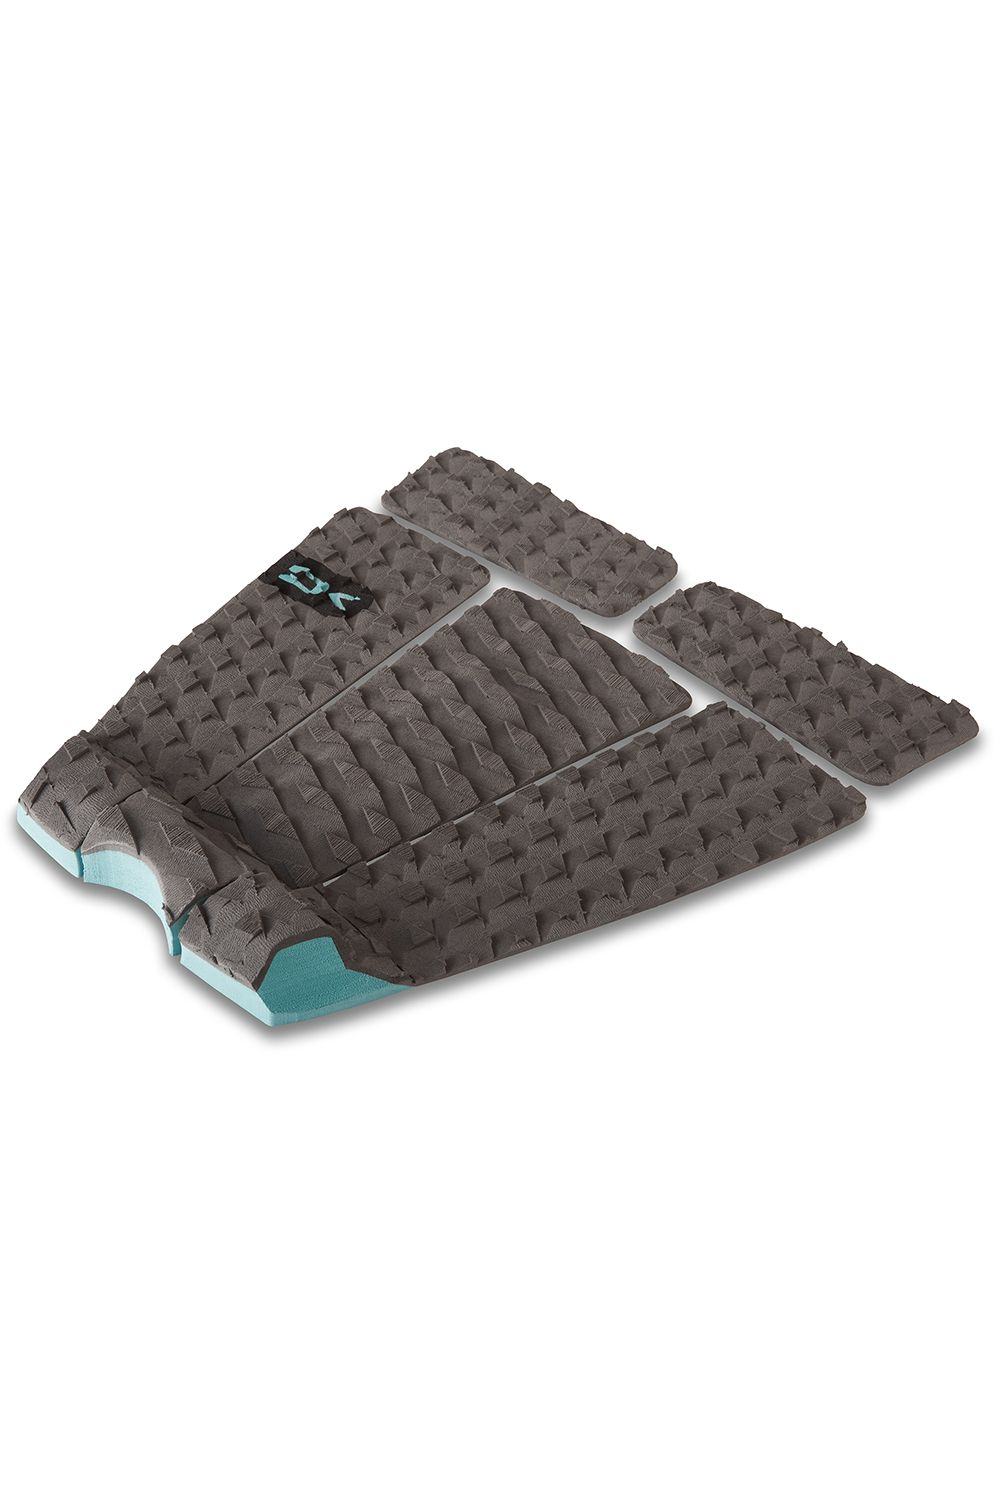 Deck Dakine BRUCE IRONS PRO SURF TRACTION PAD Shadow